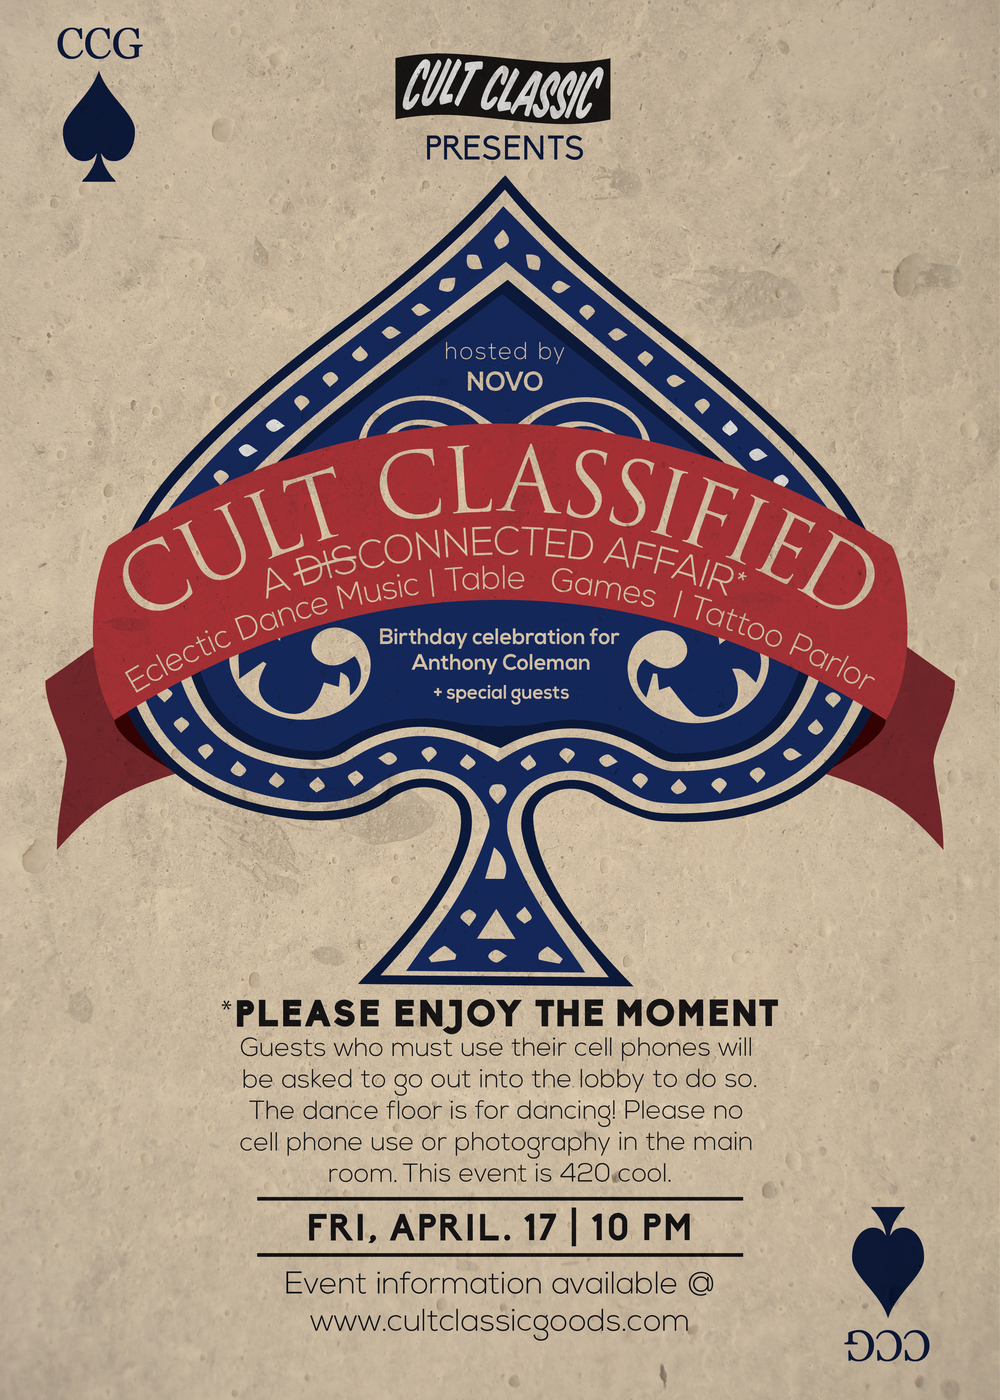 cult-classic-cult-classified-2